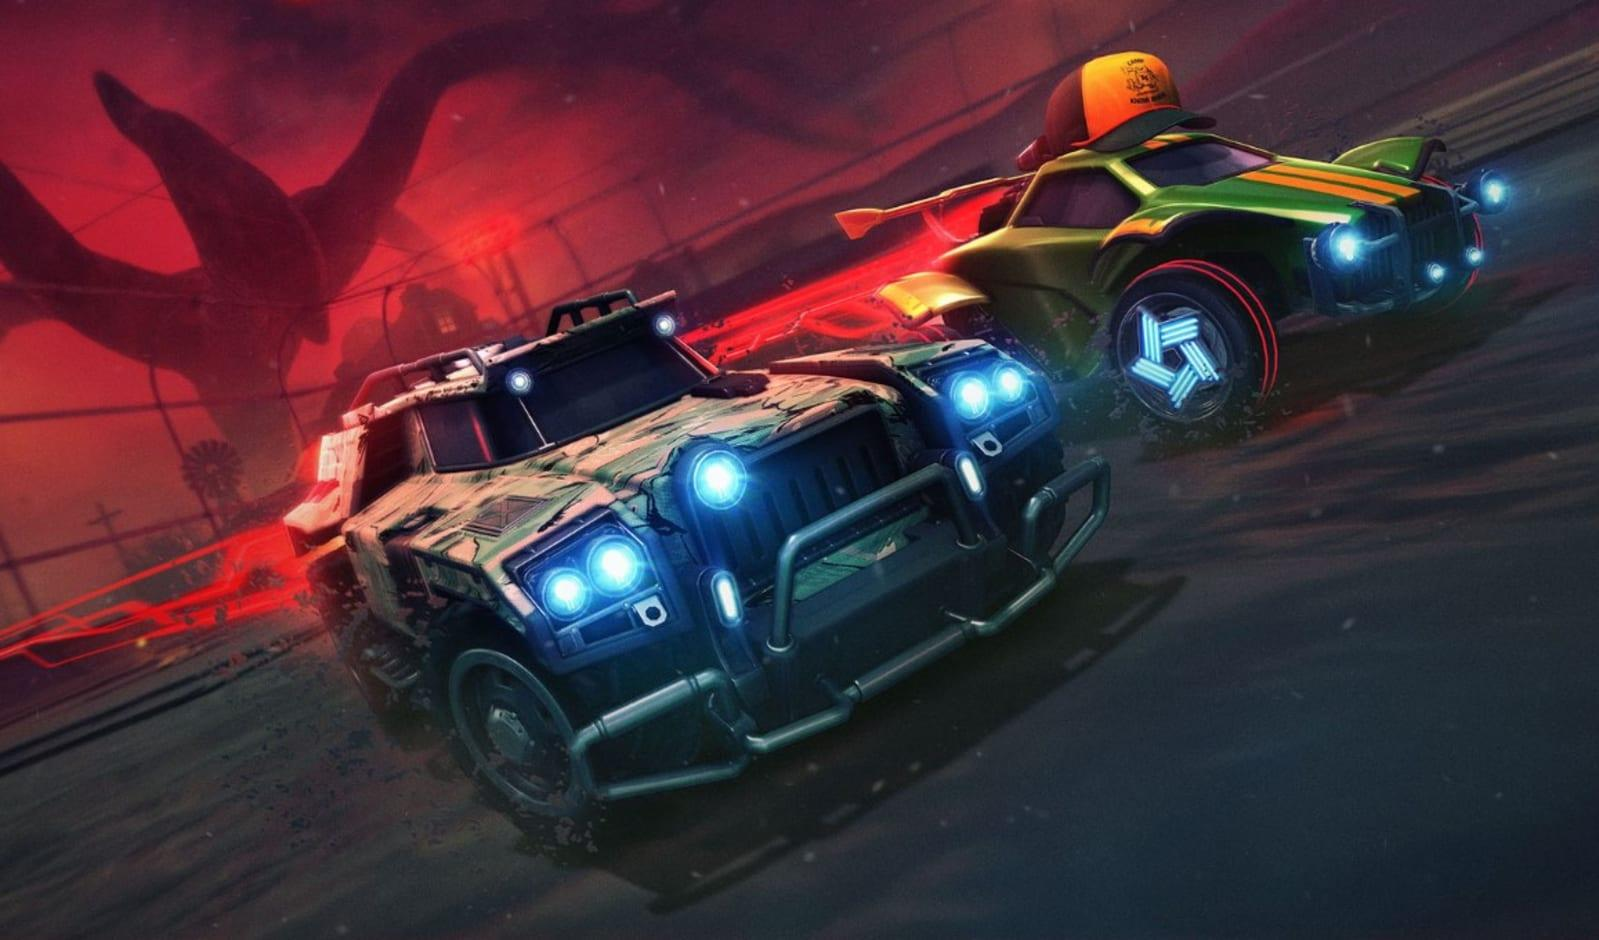 Leauge Halloween Event Start Date 2020 Stranger Things' is coming to 'Rocket League' for Halloween | Engadget